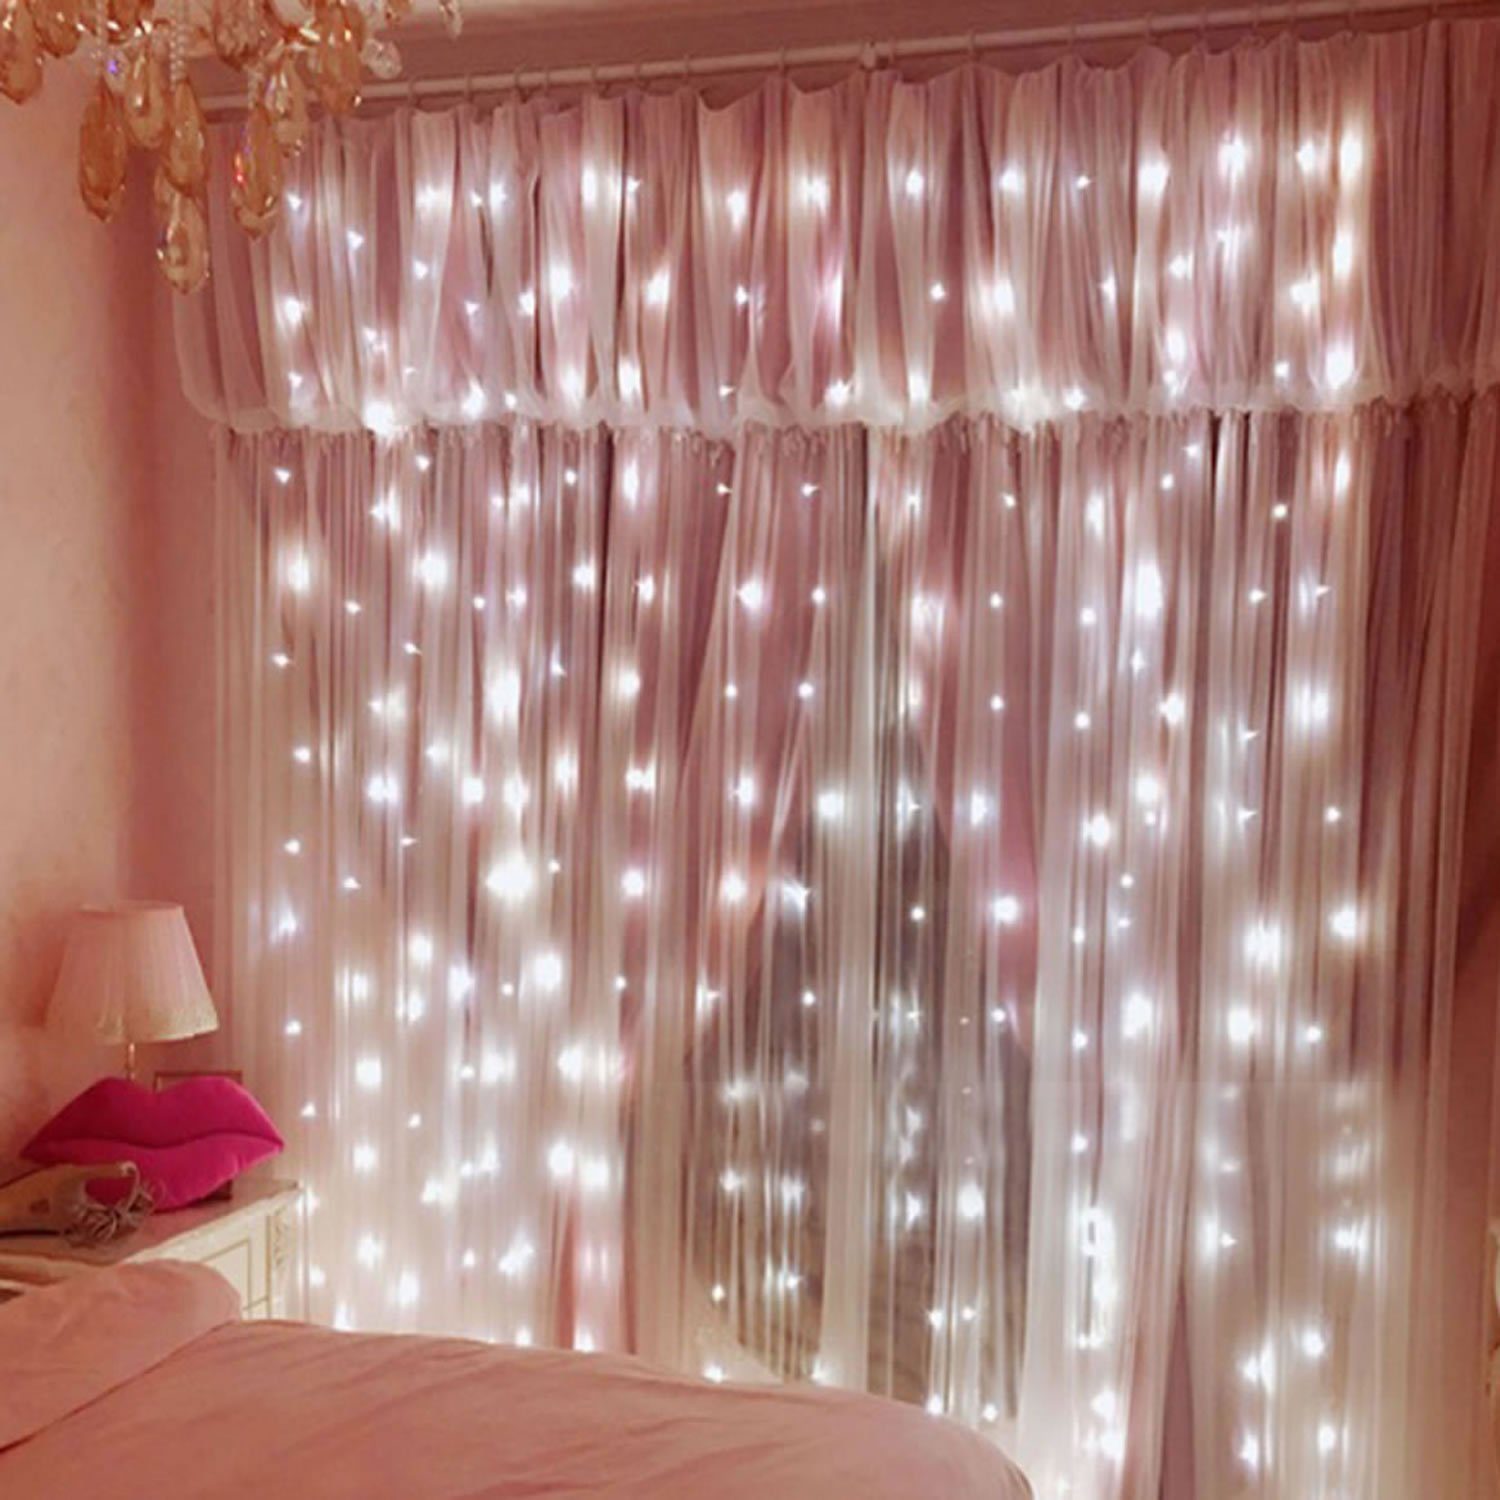 Led Window Curtain Icicle Lights, 1000LEDs 32.7x9.8ft/10mx3m Window Curtain String Lights with Contorller for Party/Wedding/ Home Patio/Lawn Garden (White)